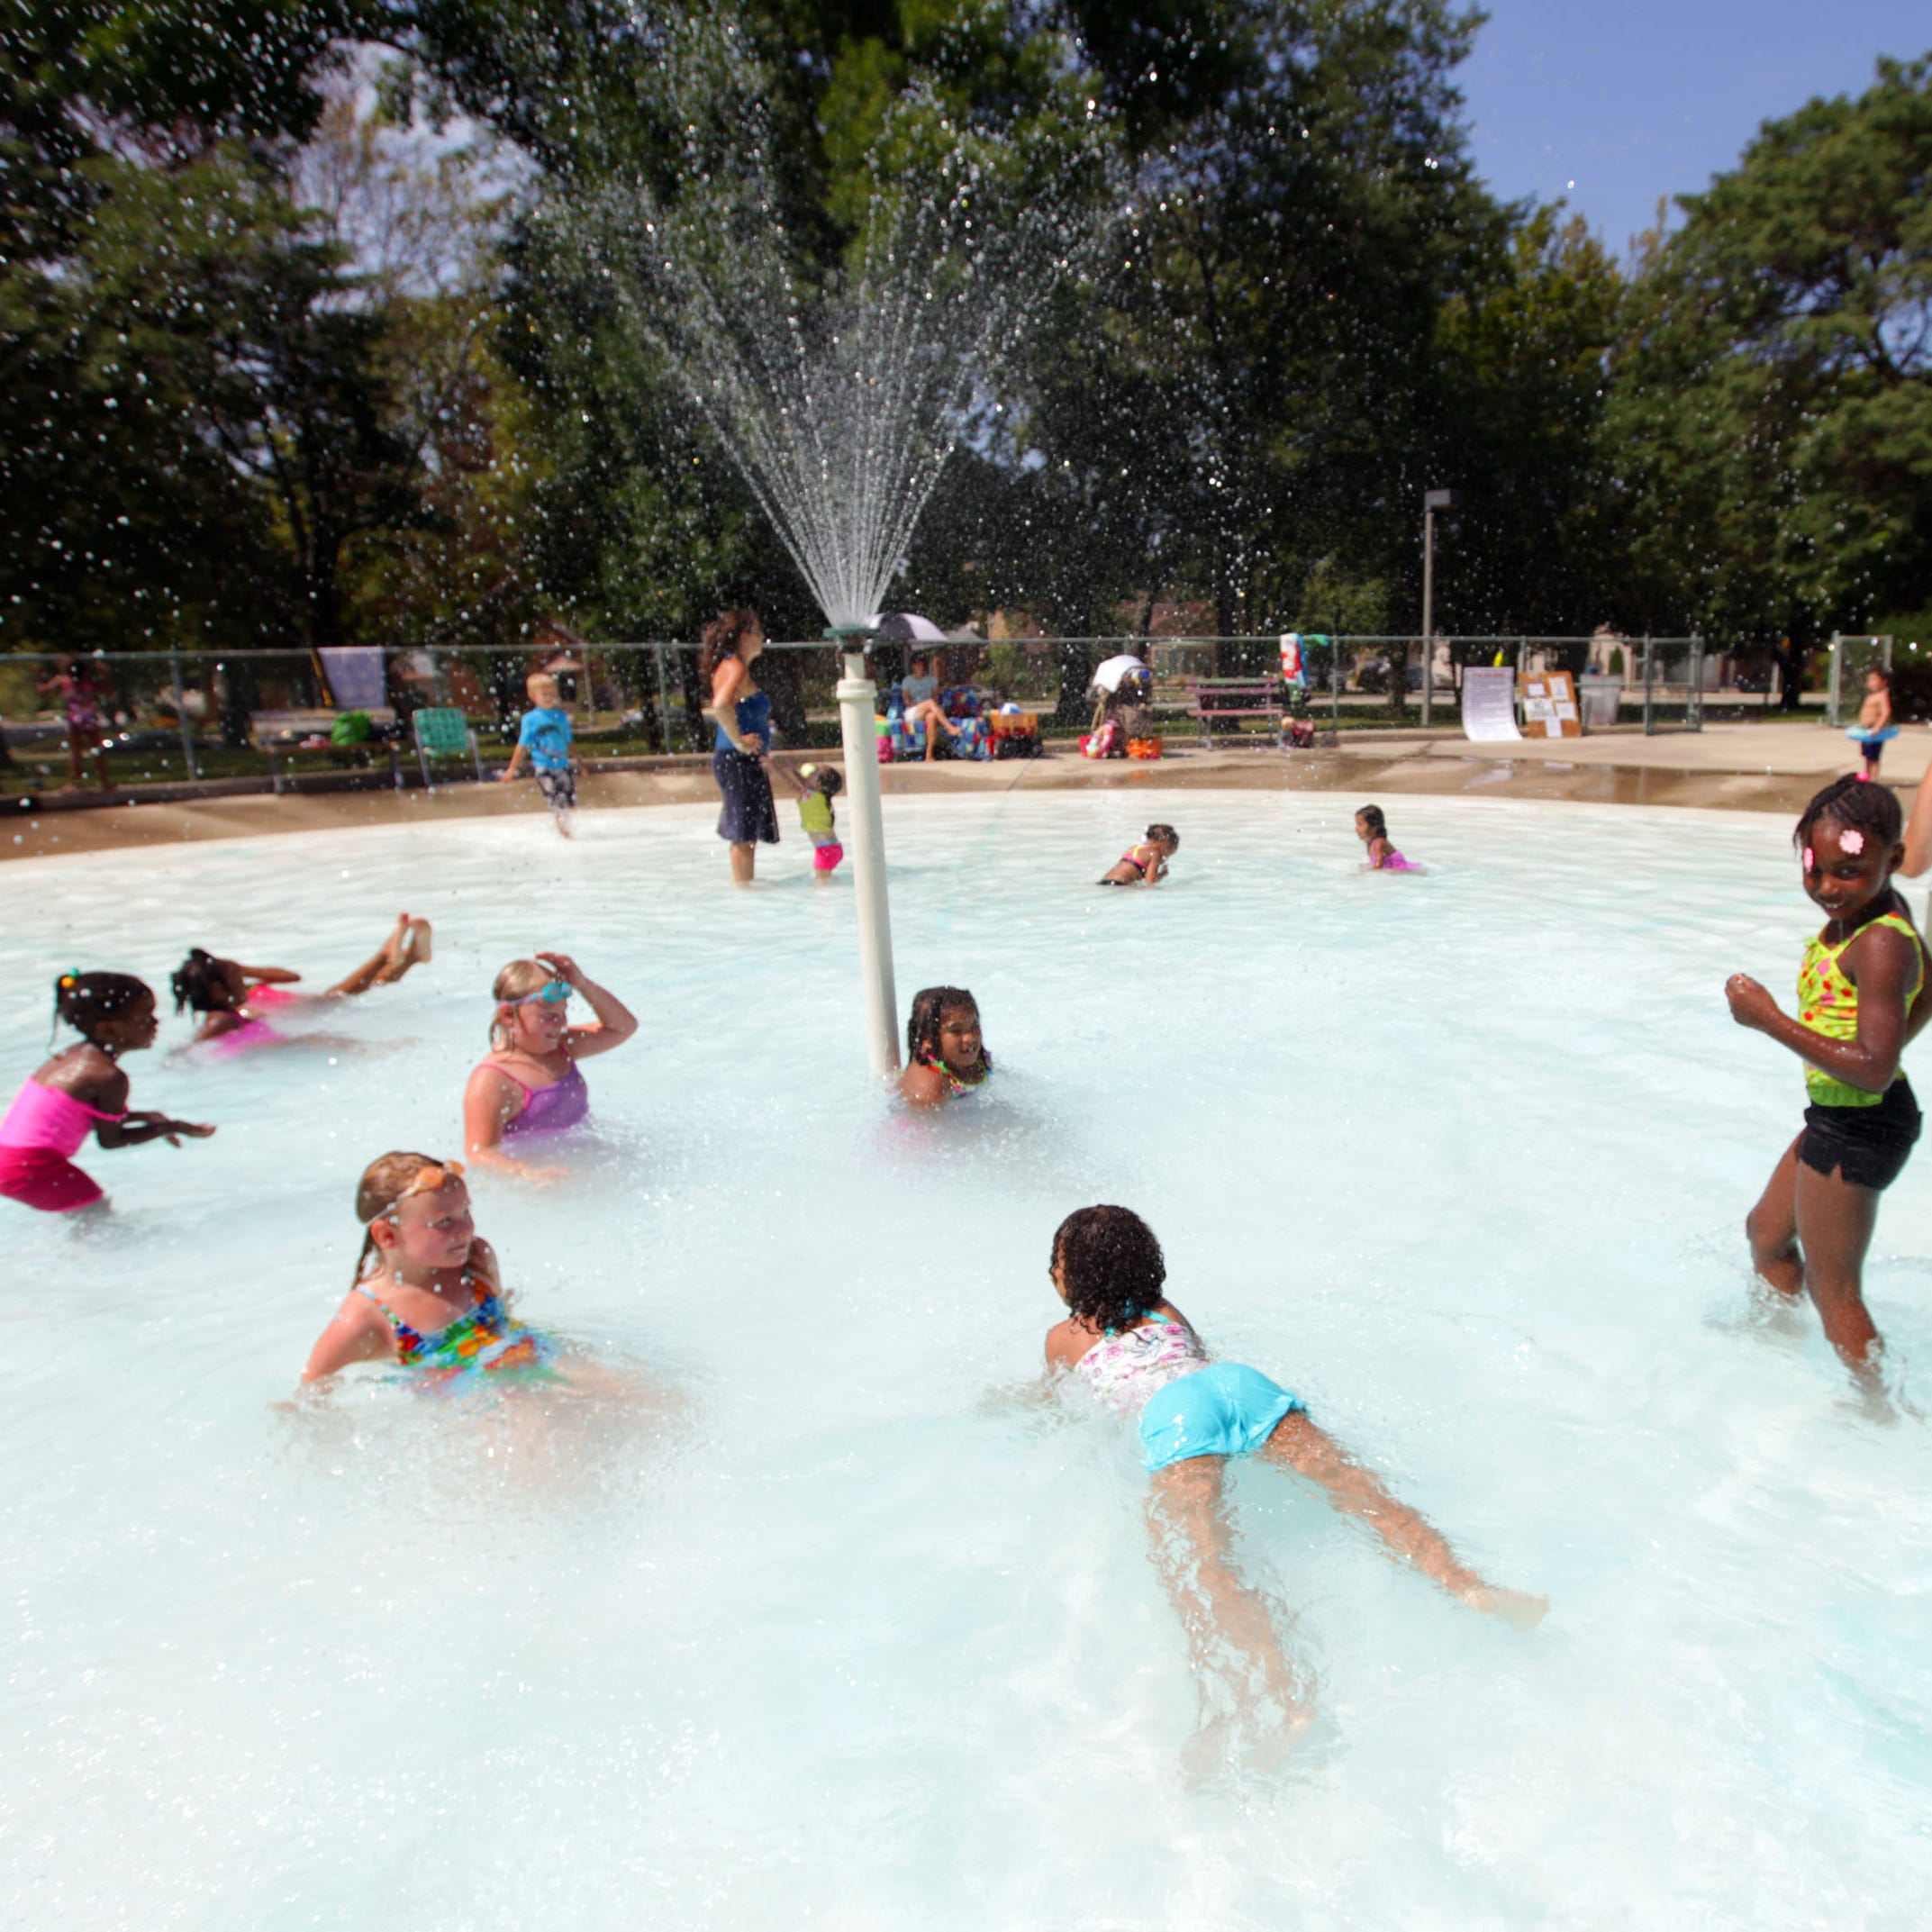 2019 guide to pools, wading pools and splash pads in the Milwaukee area